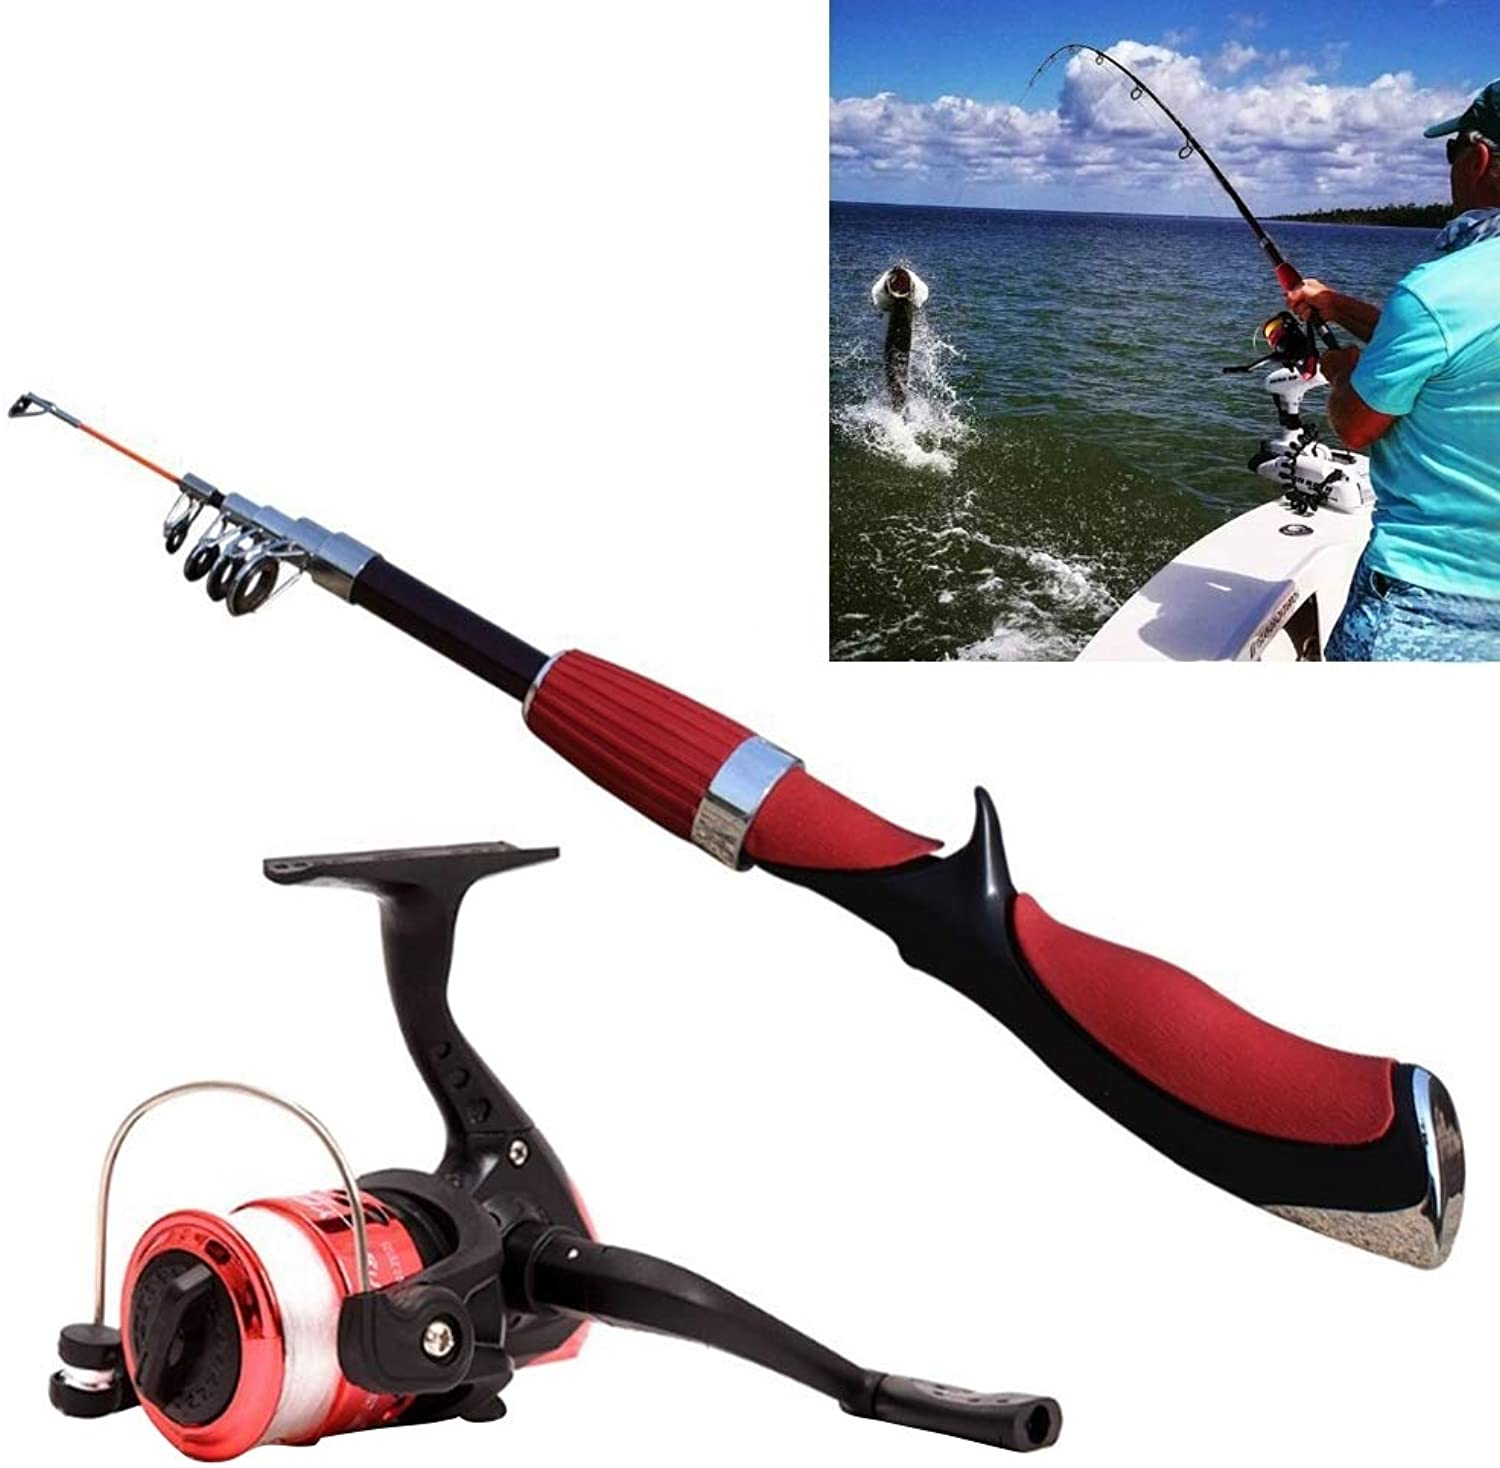 Rods Portable Fishing Rod with 1.4m Curved Shank and 6 Sections with Fishing Reel, Minimum Length  35cm Rods